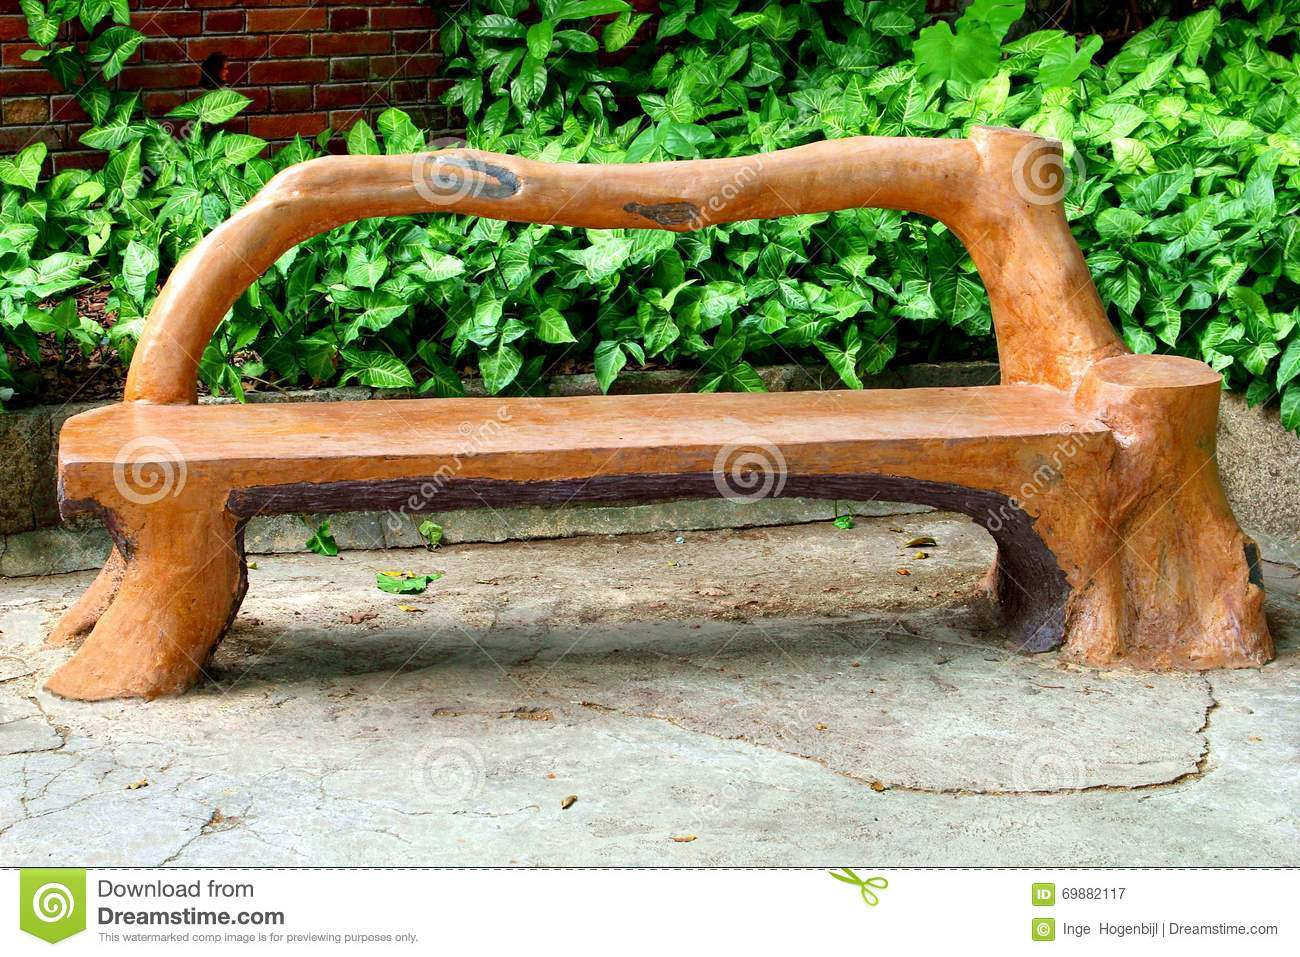 Artistic garden furniture on patio. Artistic Garden Furniture On Patio Stock Photo   Image  69882117